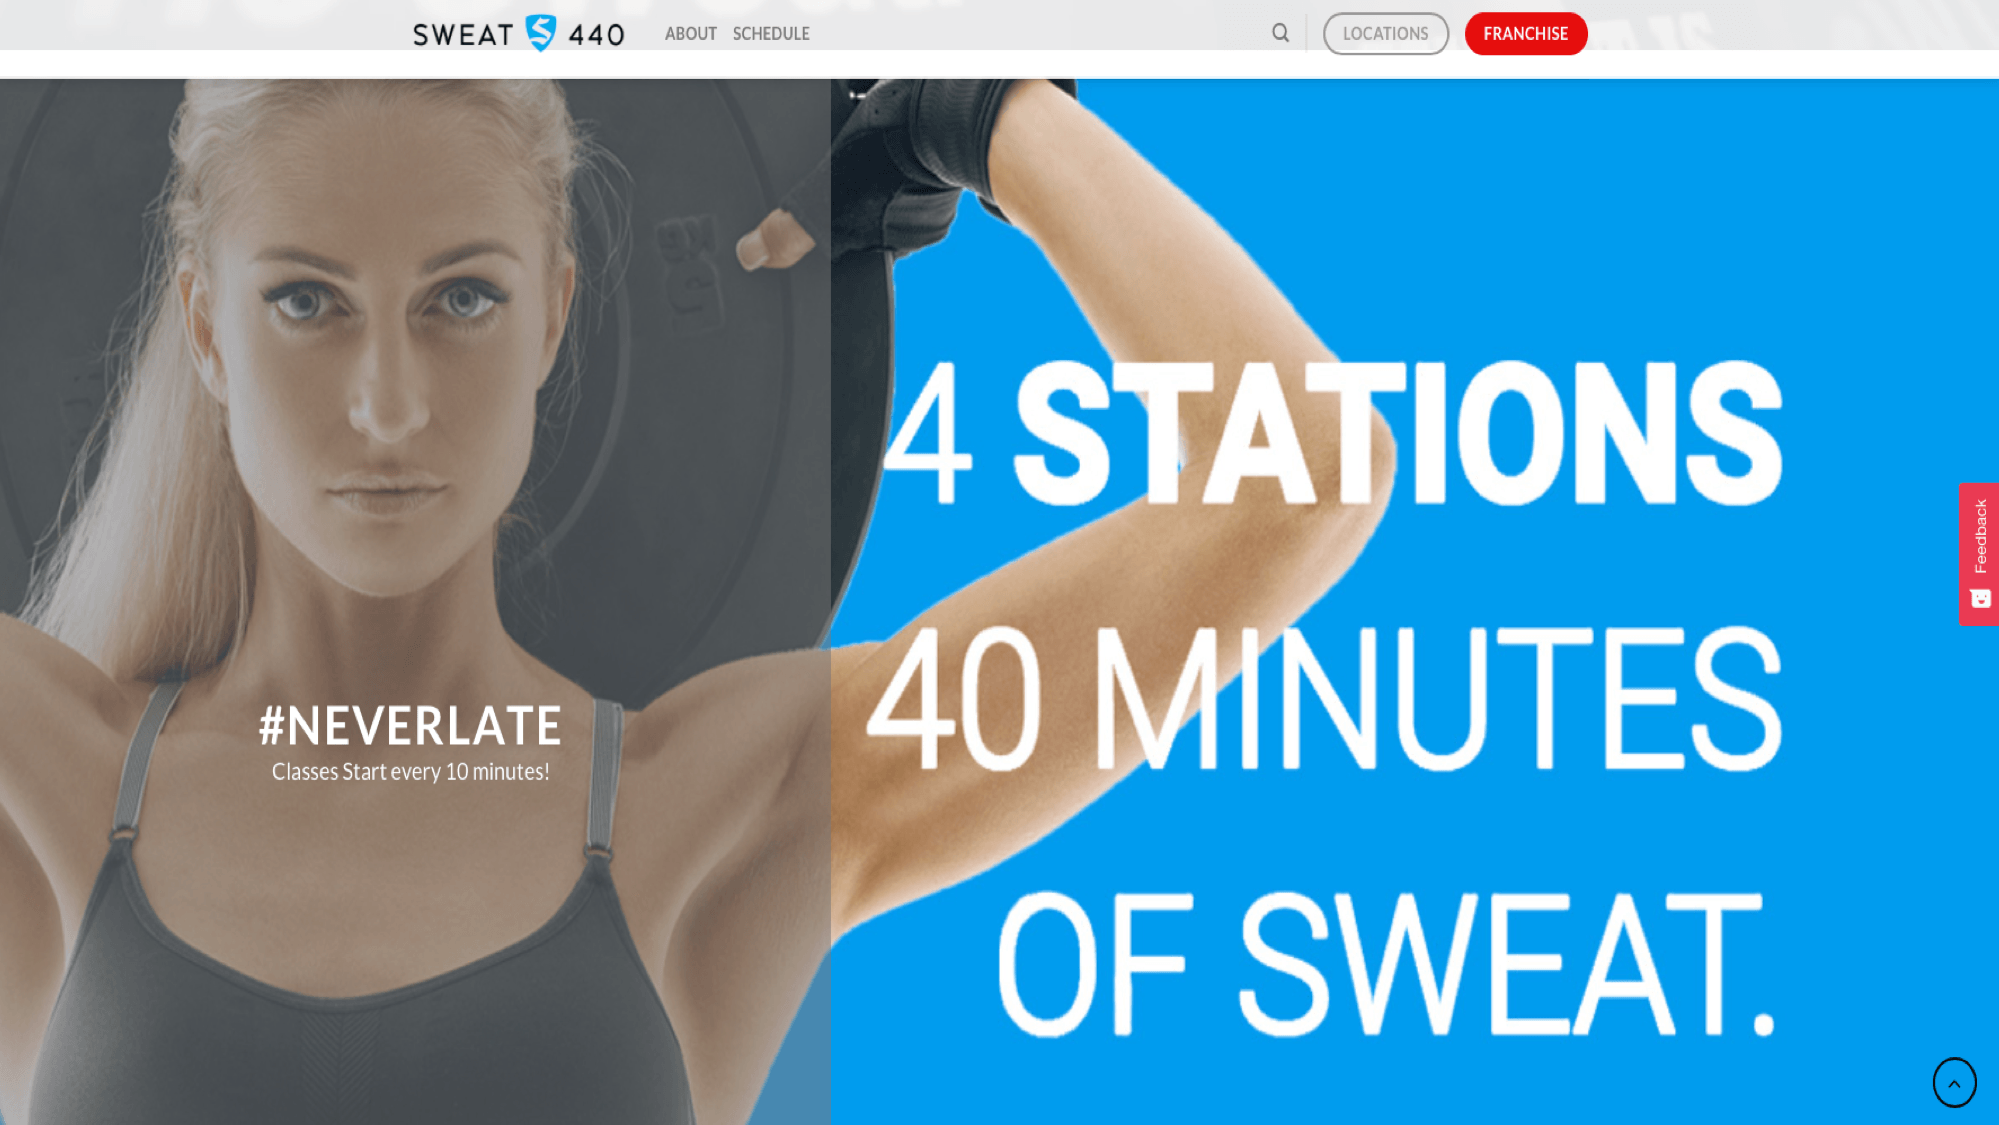 sweat440.png